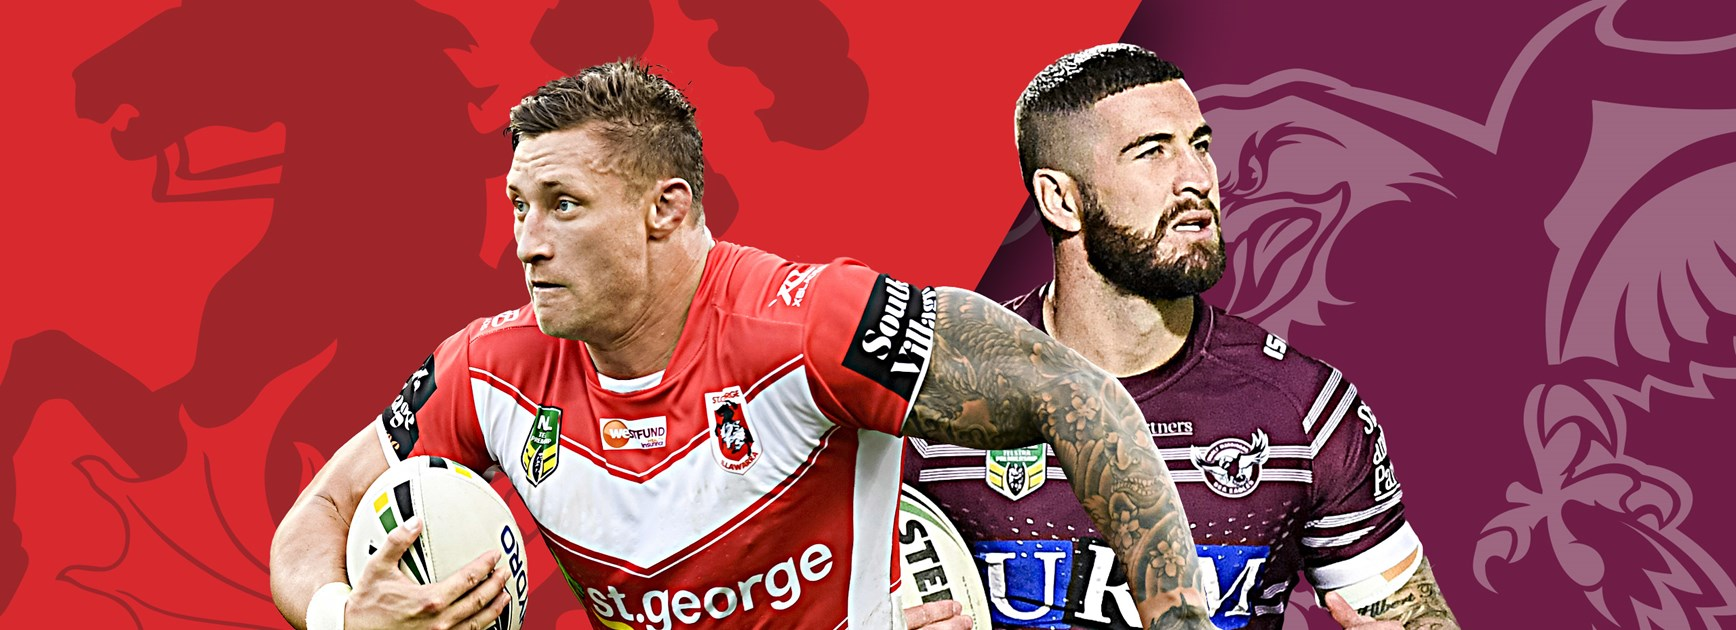 Dragons v Sea Eagles: Changes for Manly, Nightingale still benched